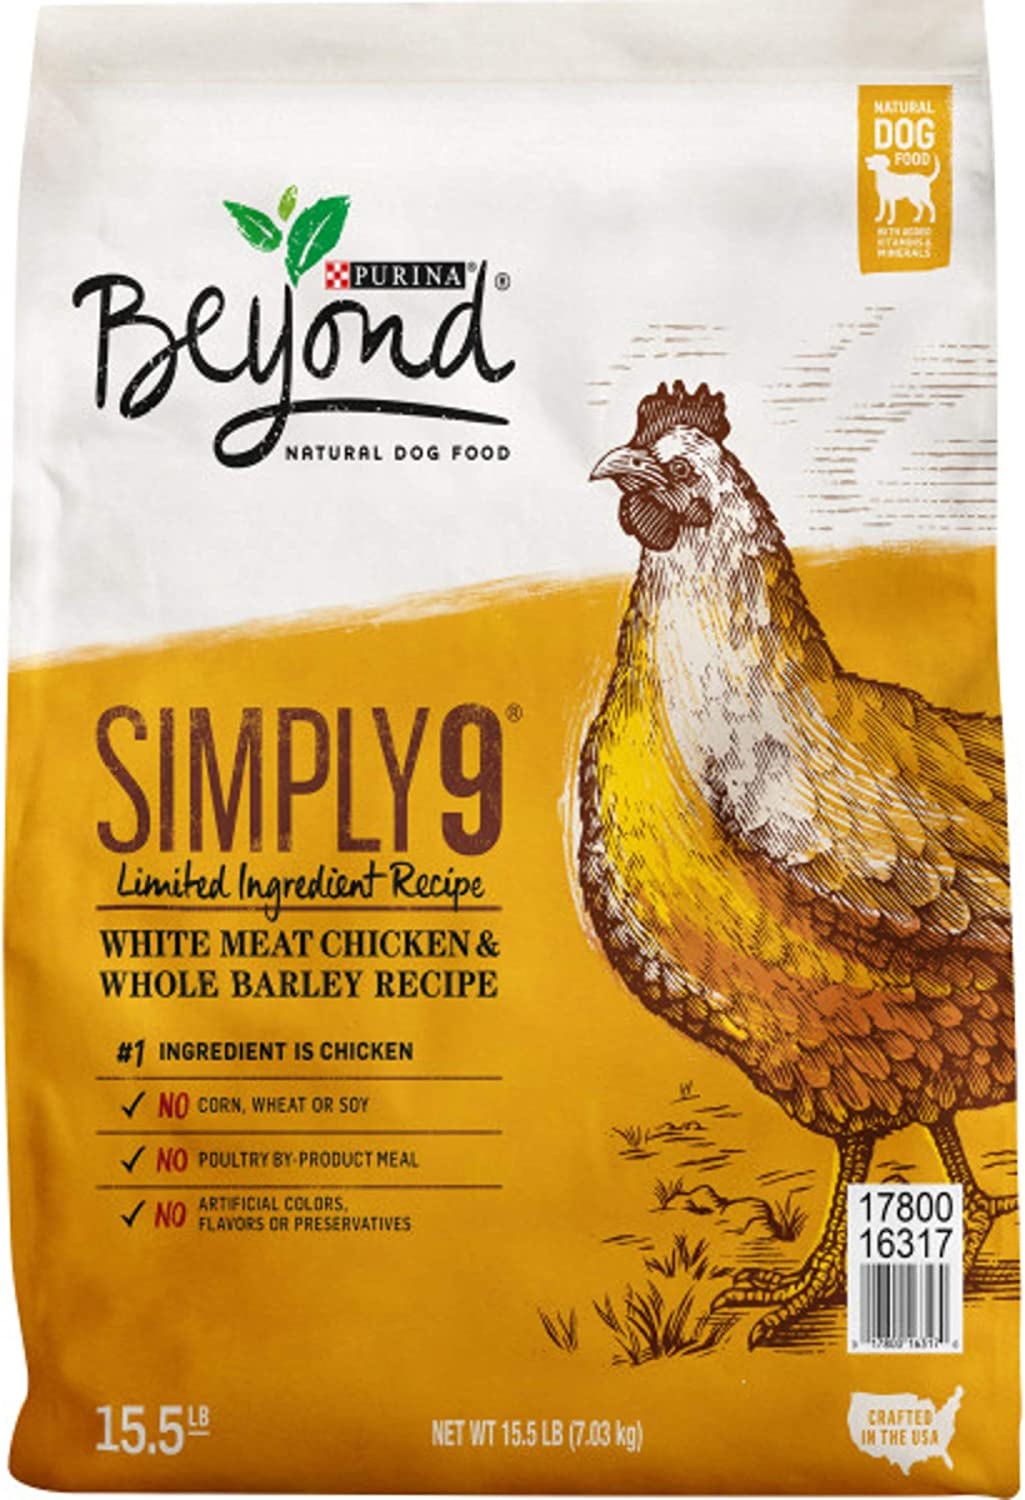 Purina Beyond Simply 9, Dog Food, Chicken & Whole Barley